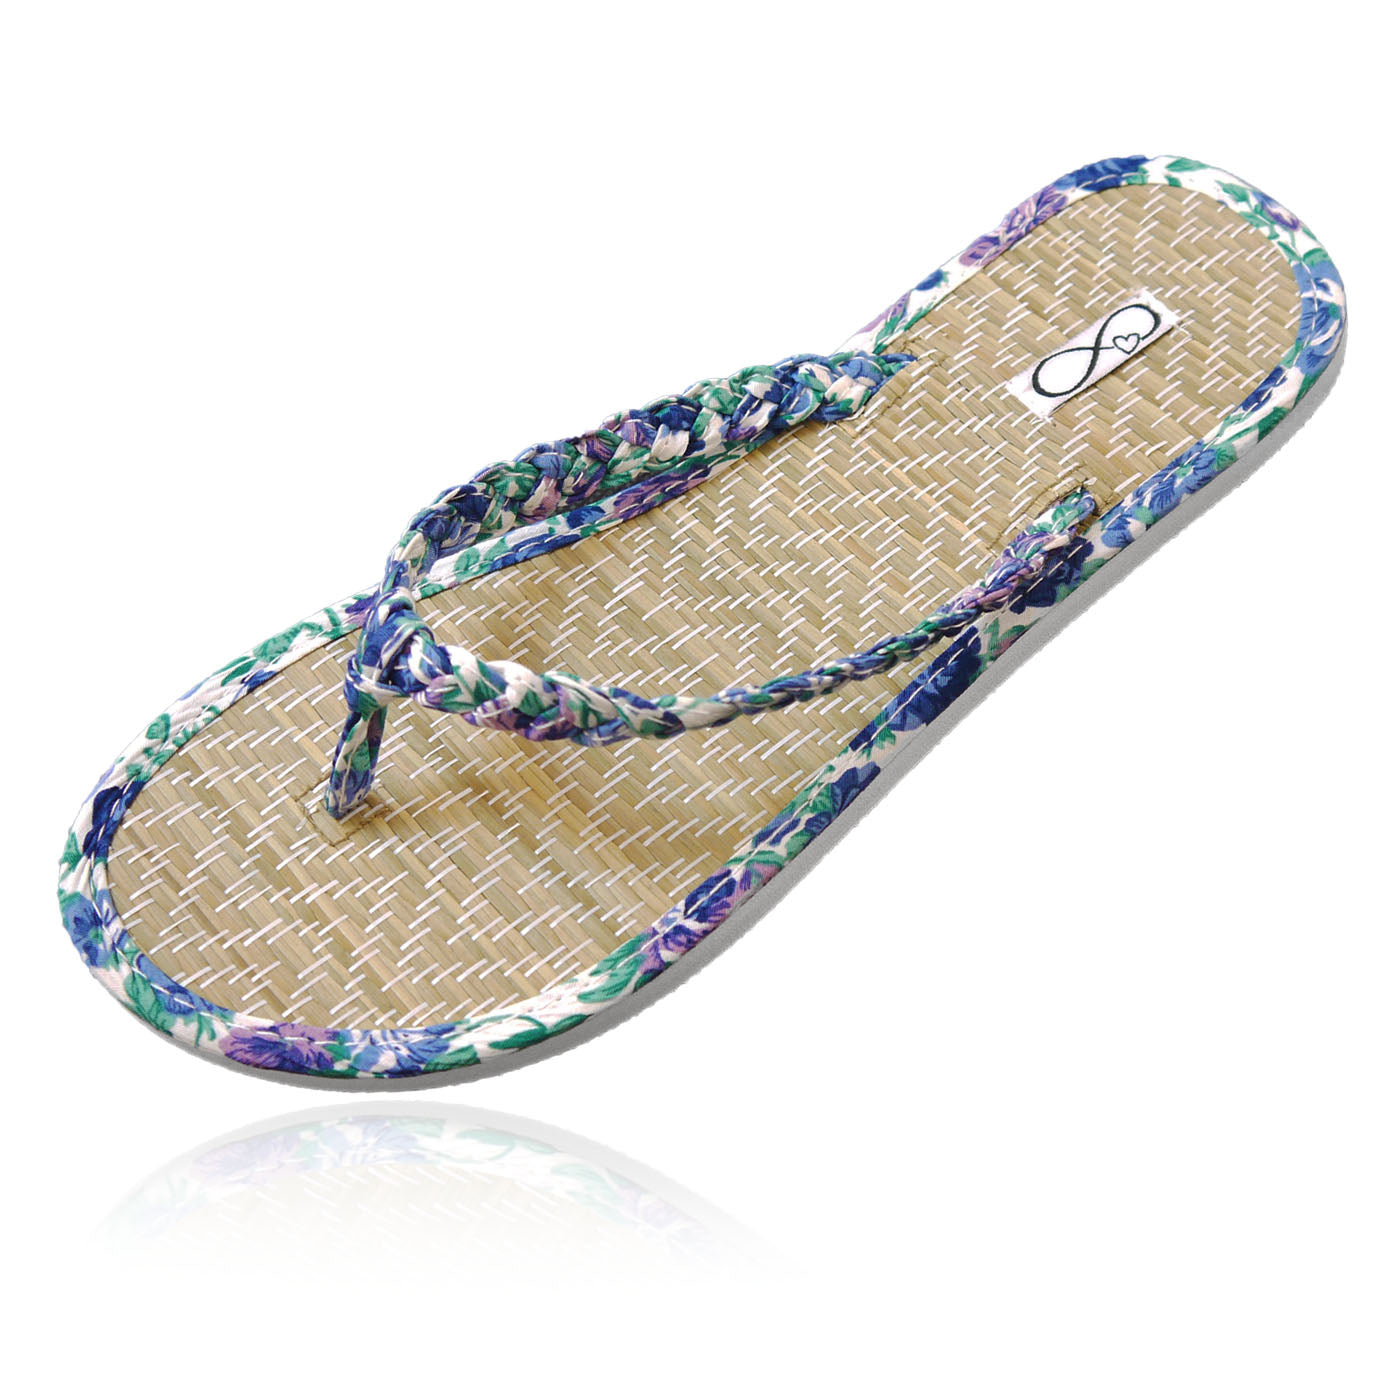 30 pairs of blue beach flip flops in a personalized crate